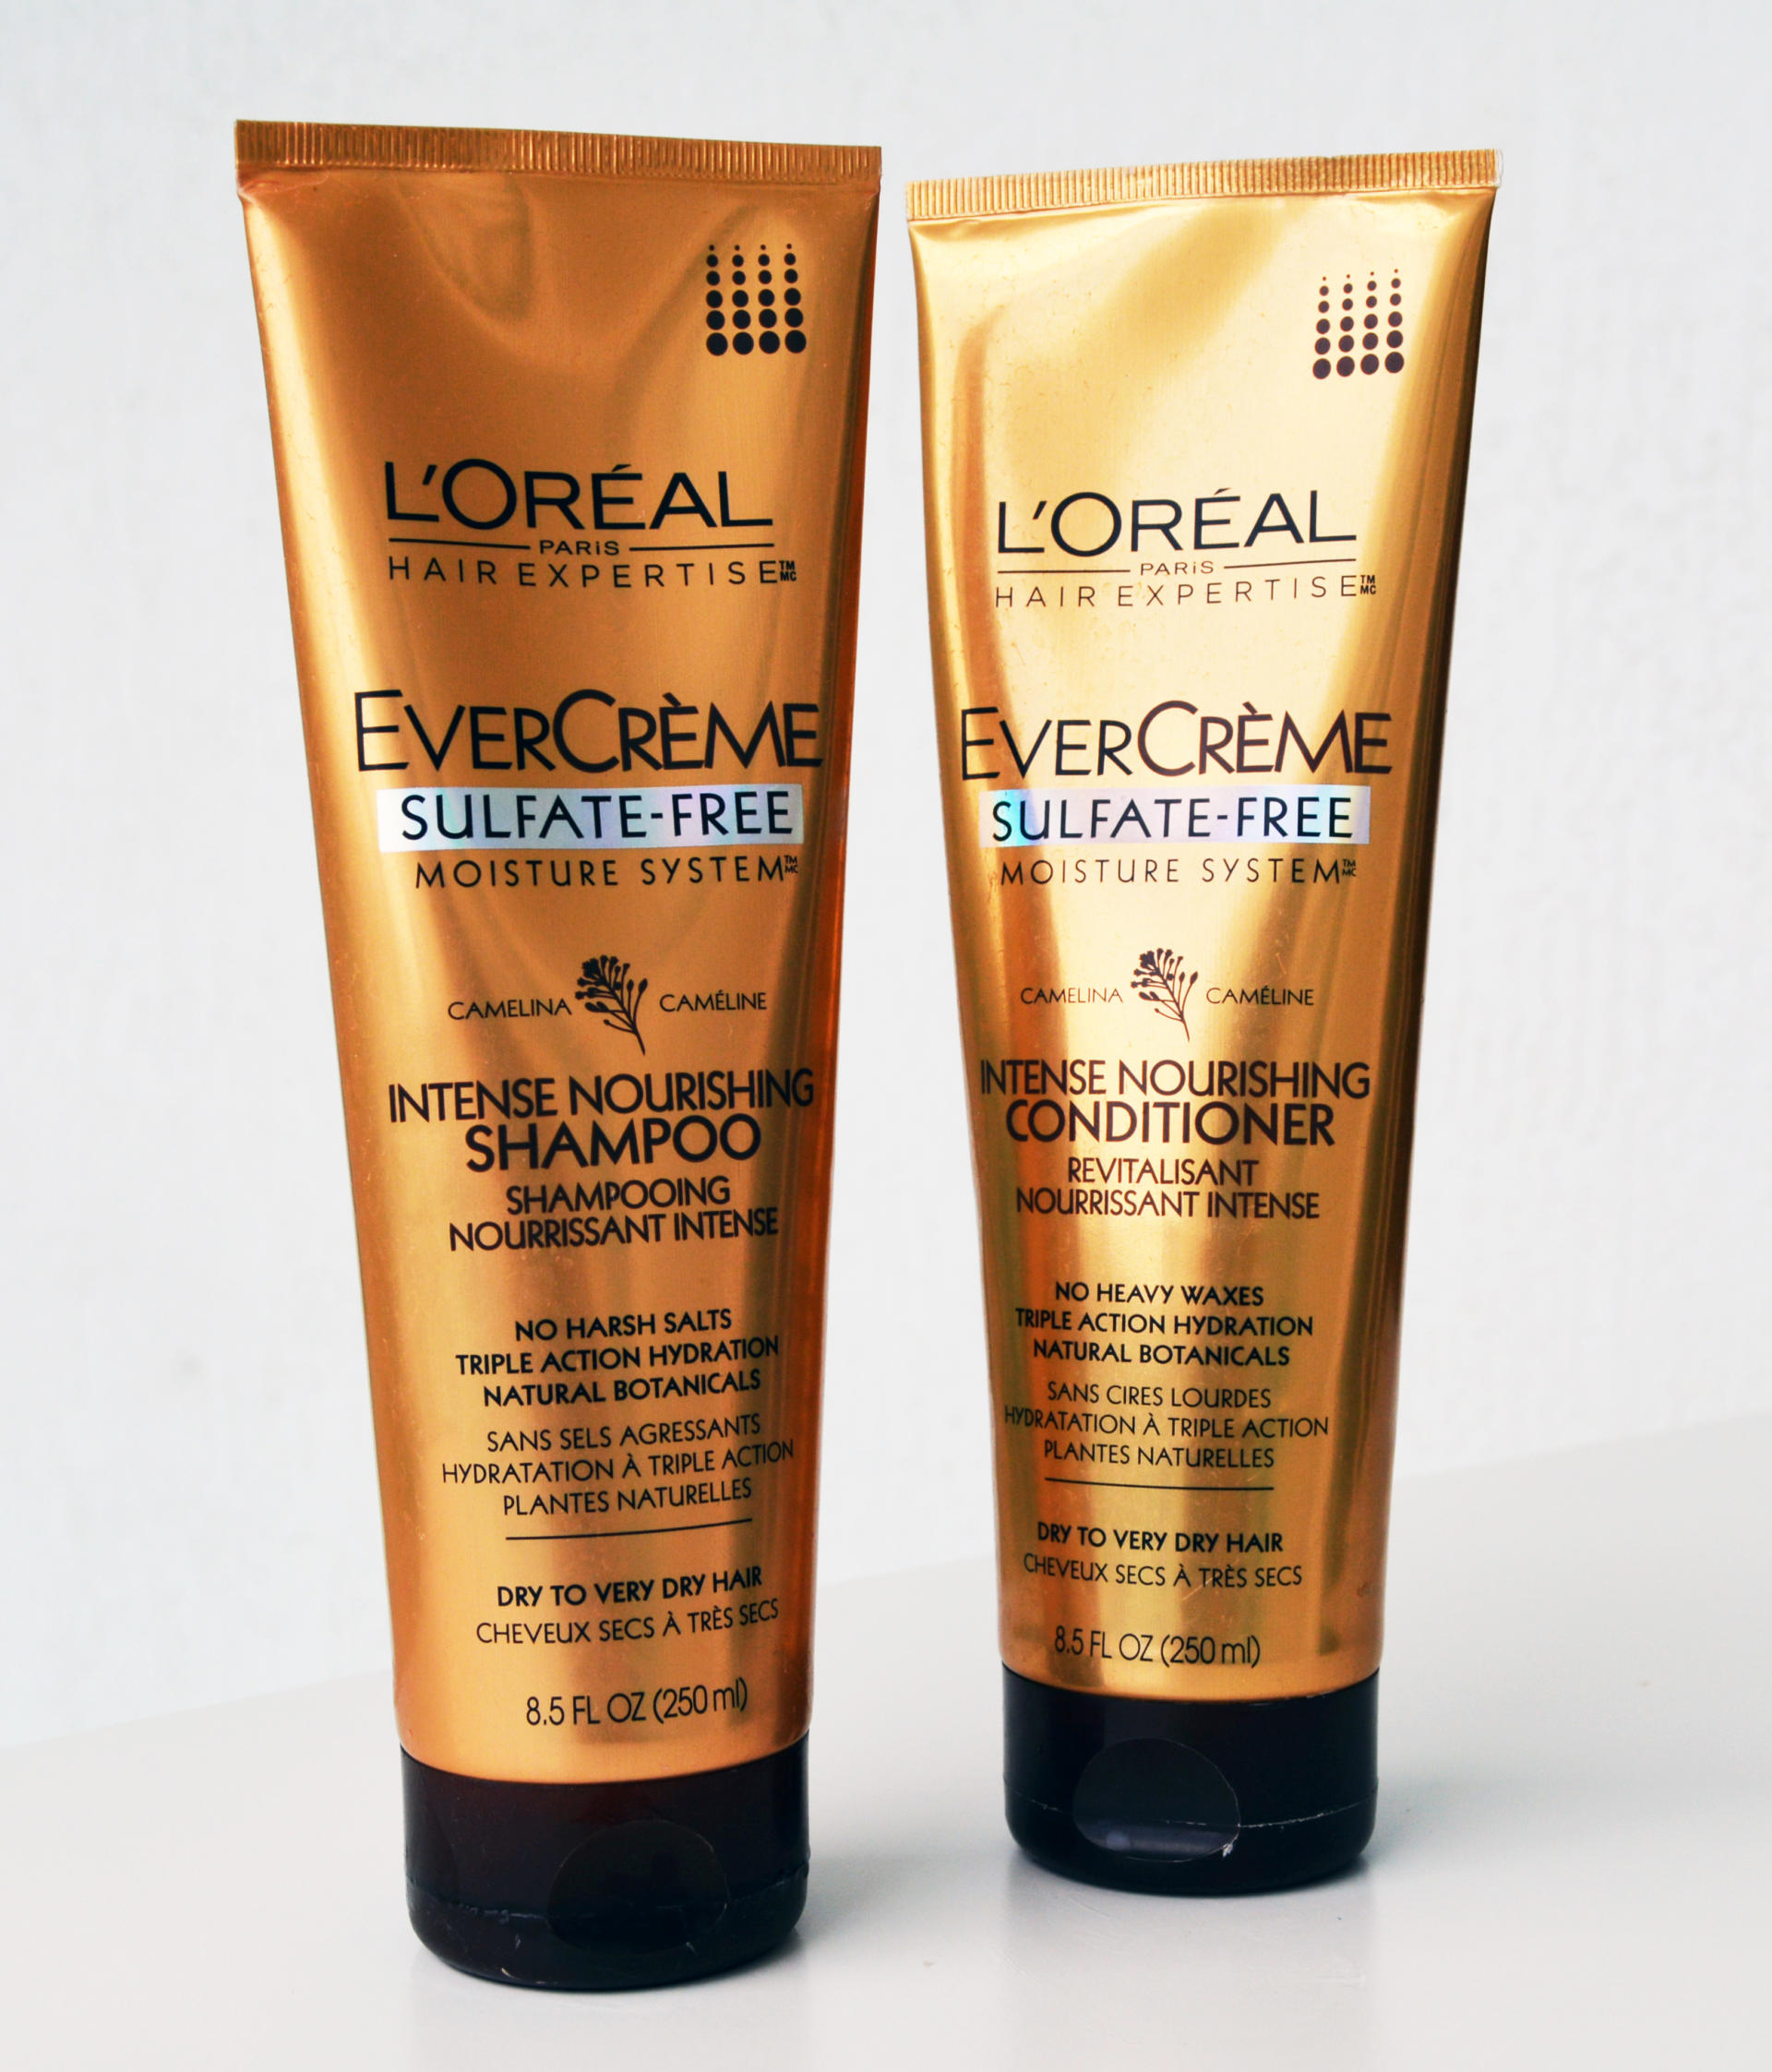 L'Oréal EverCreme Deep Nourish Shampoo and Conditioner